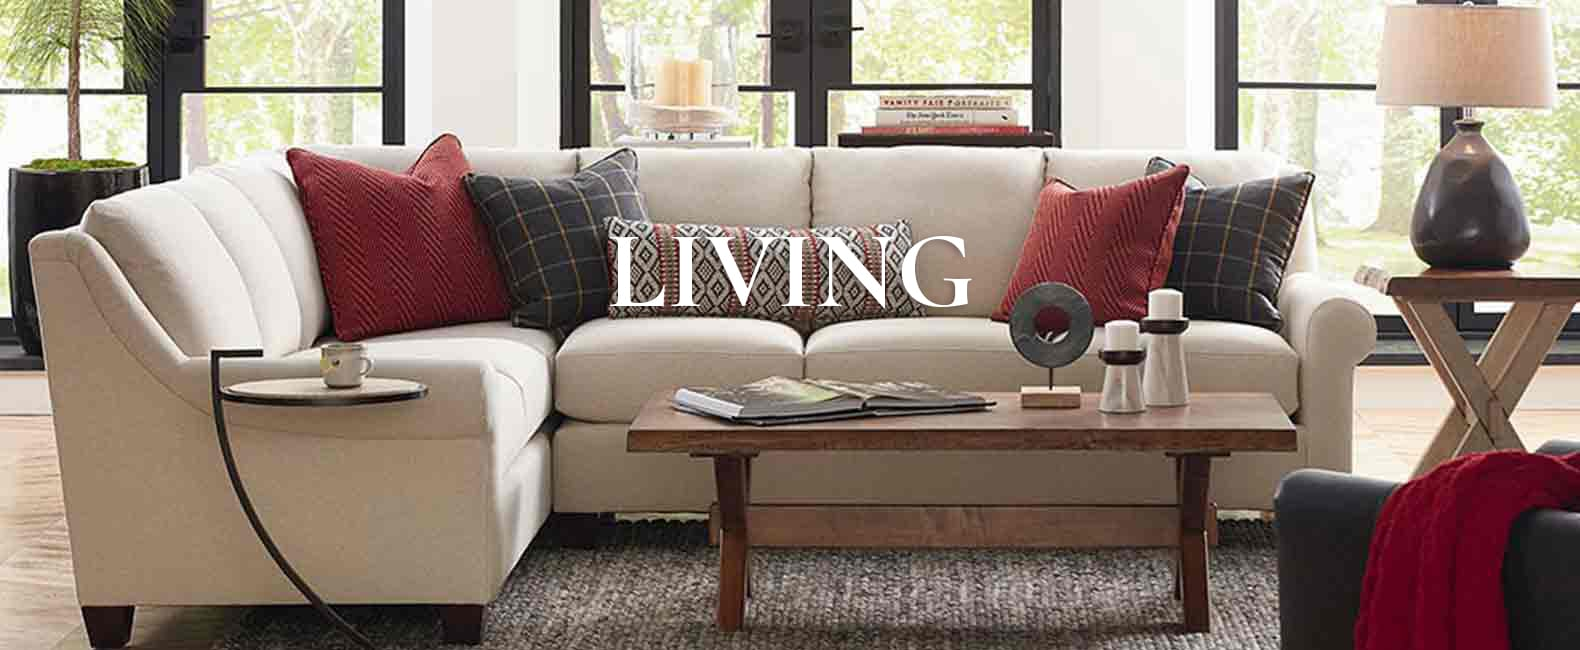 sectional sofa with coffee table in living room